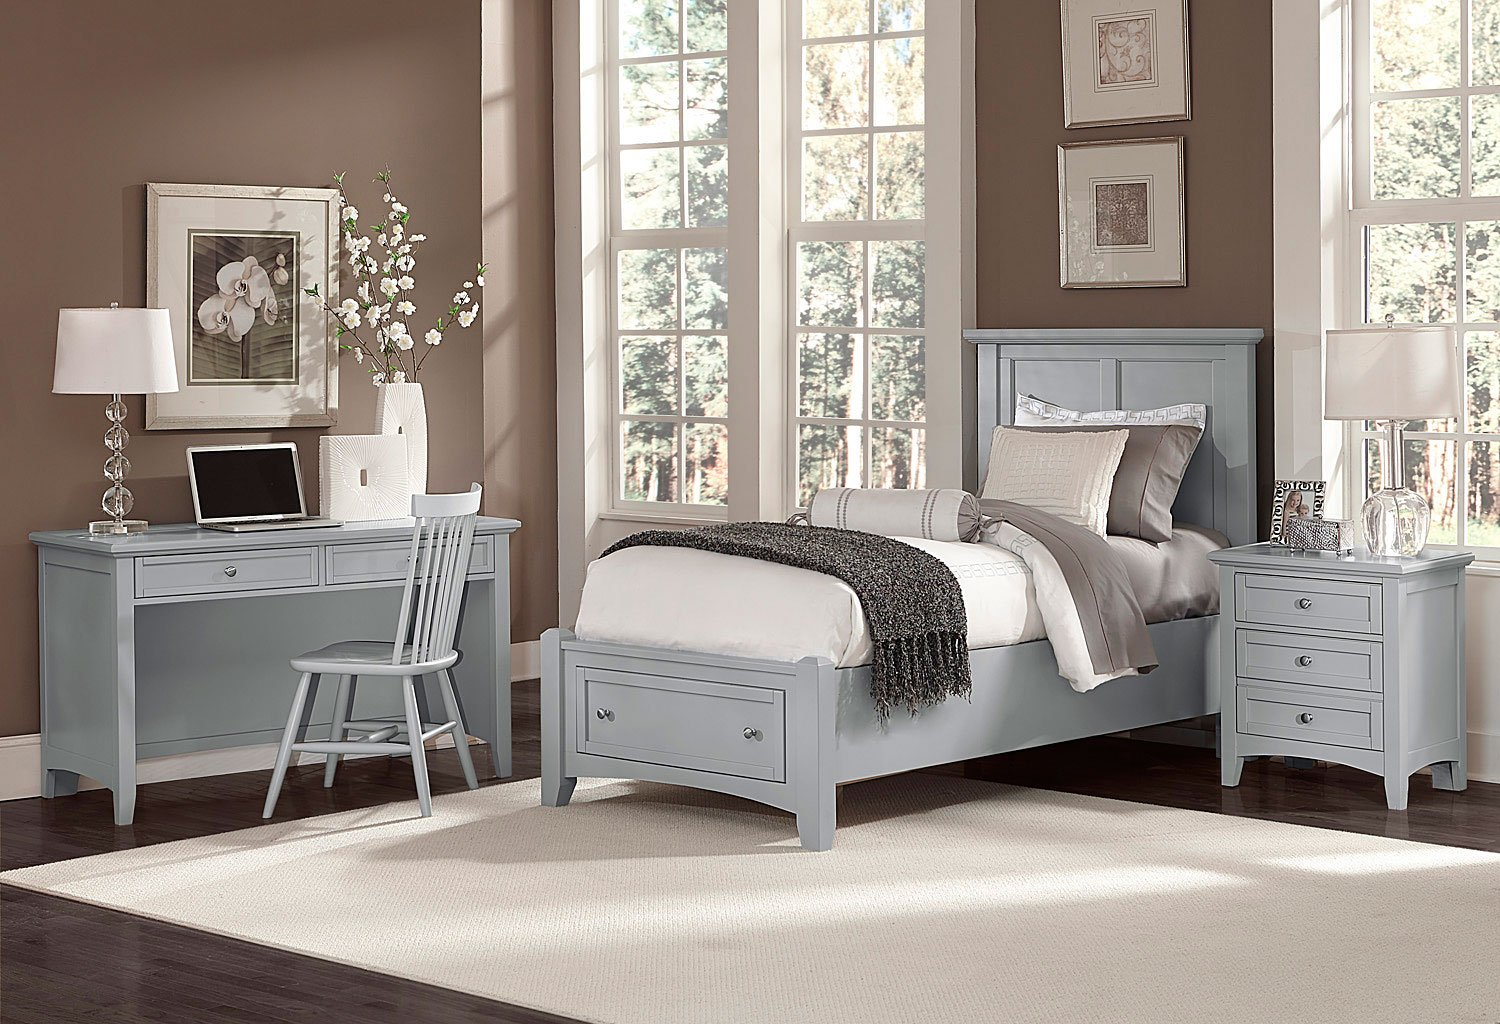 Bonanza youth mansion storage bedroom set gray vaughan - Youth bedroom furniture with storage ...